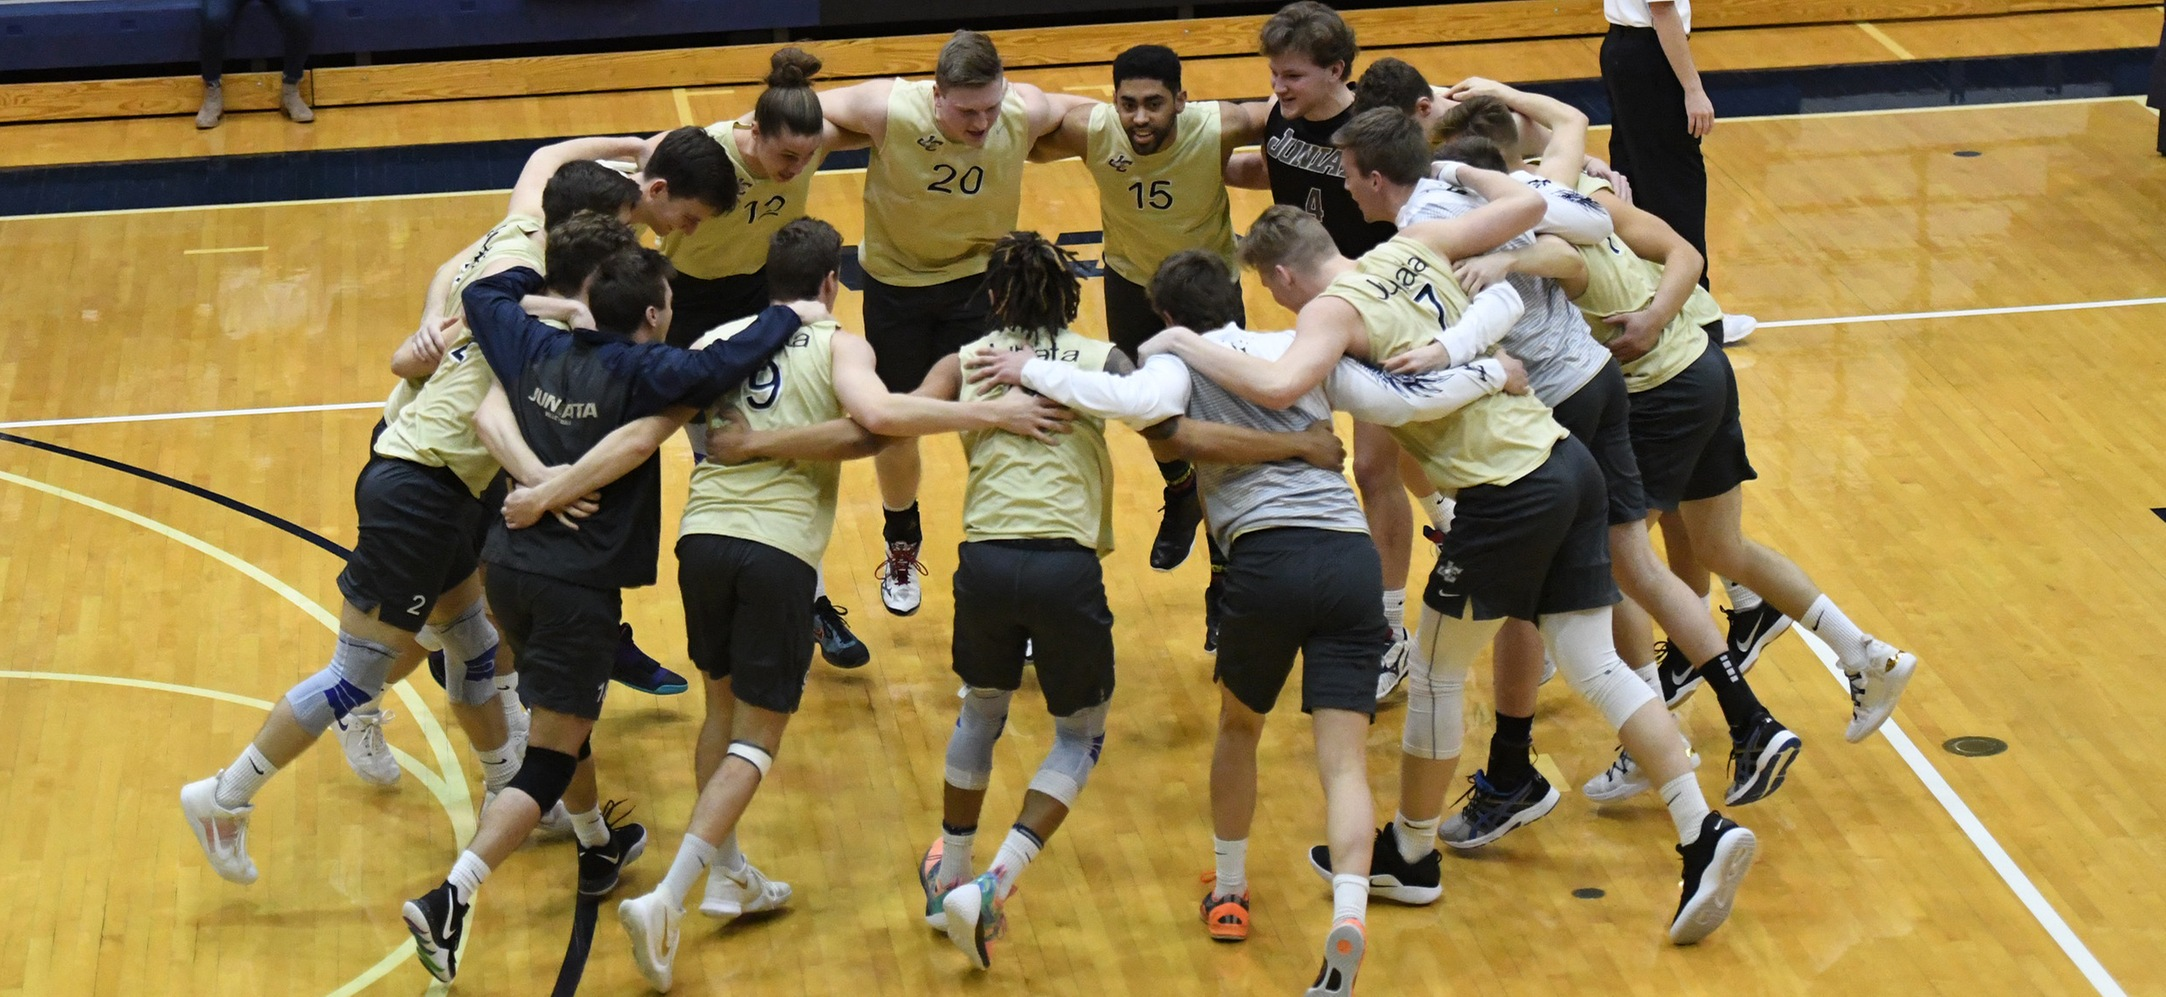 Eagles Sweep Aside #7 Cougars to Reach CVC Championship